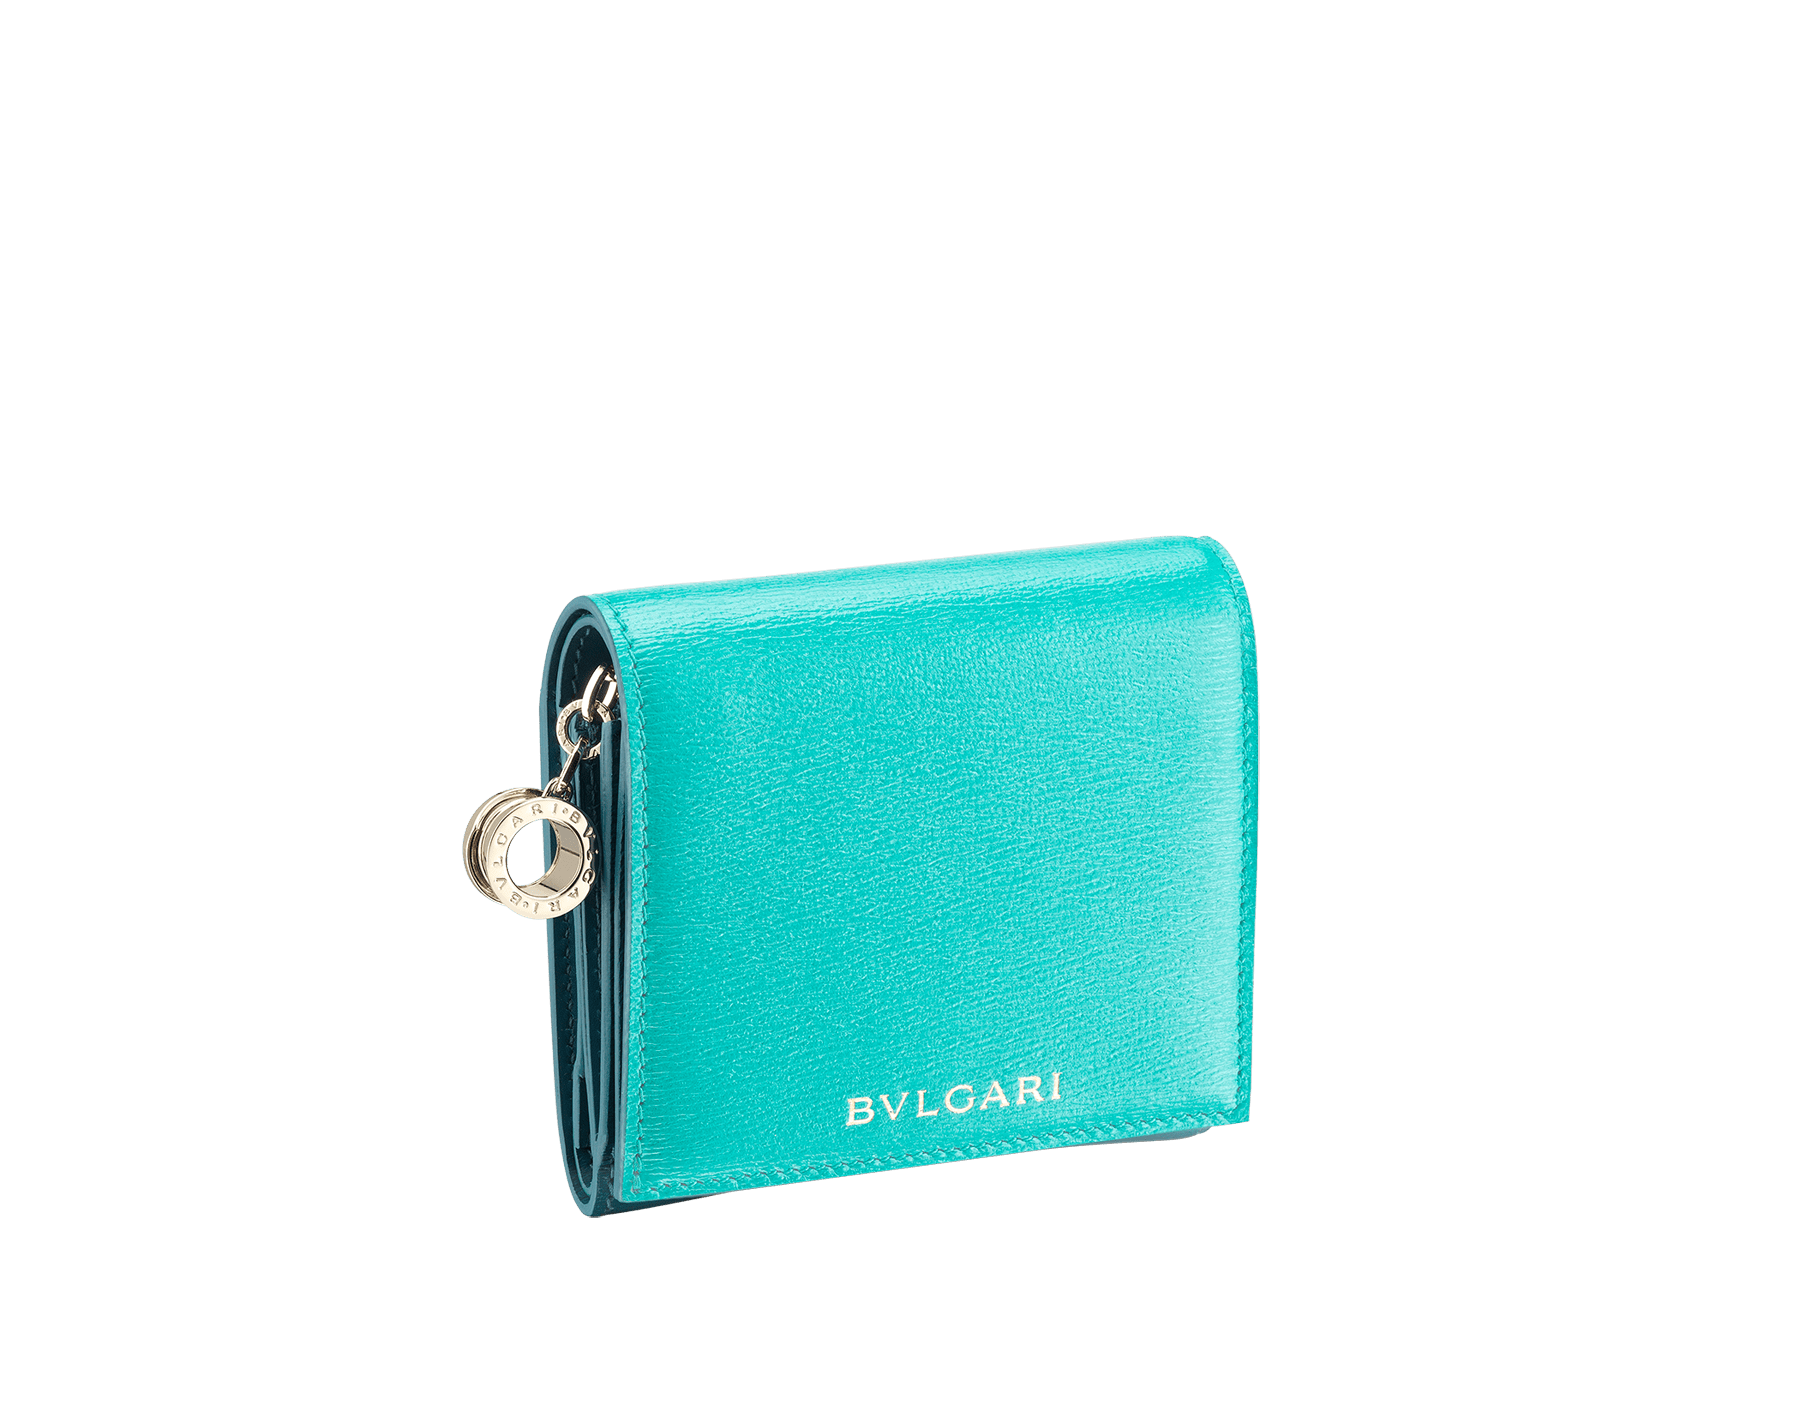 B.zero1 super compact wallet in tropical turquoise and deep jade goatskin. Iconic B.zero1 charm in light gold plated brass. 288242 image 1